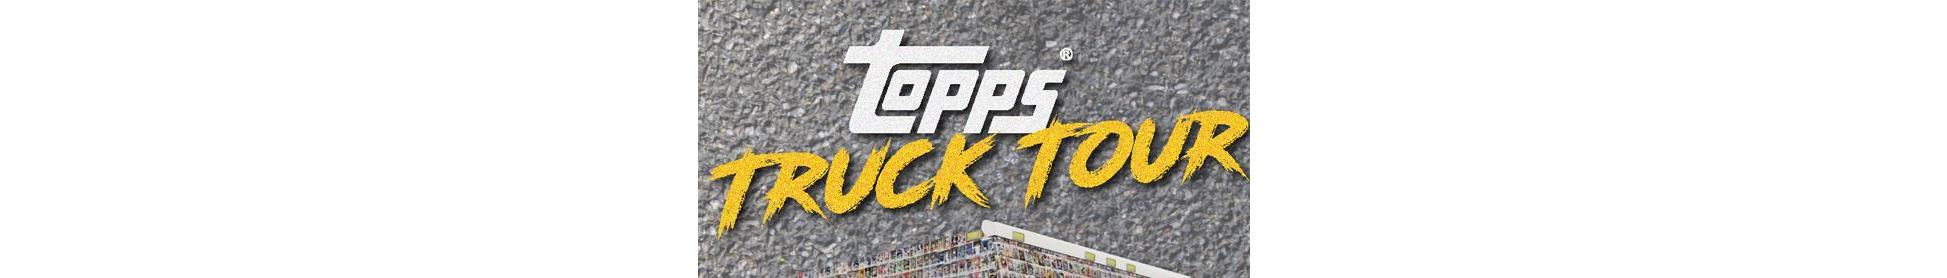 Topps Celebrates National Baseball Card Day with Nationwide Pop-up Truck Tour